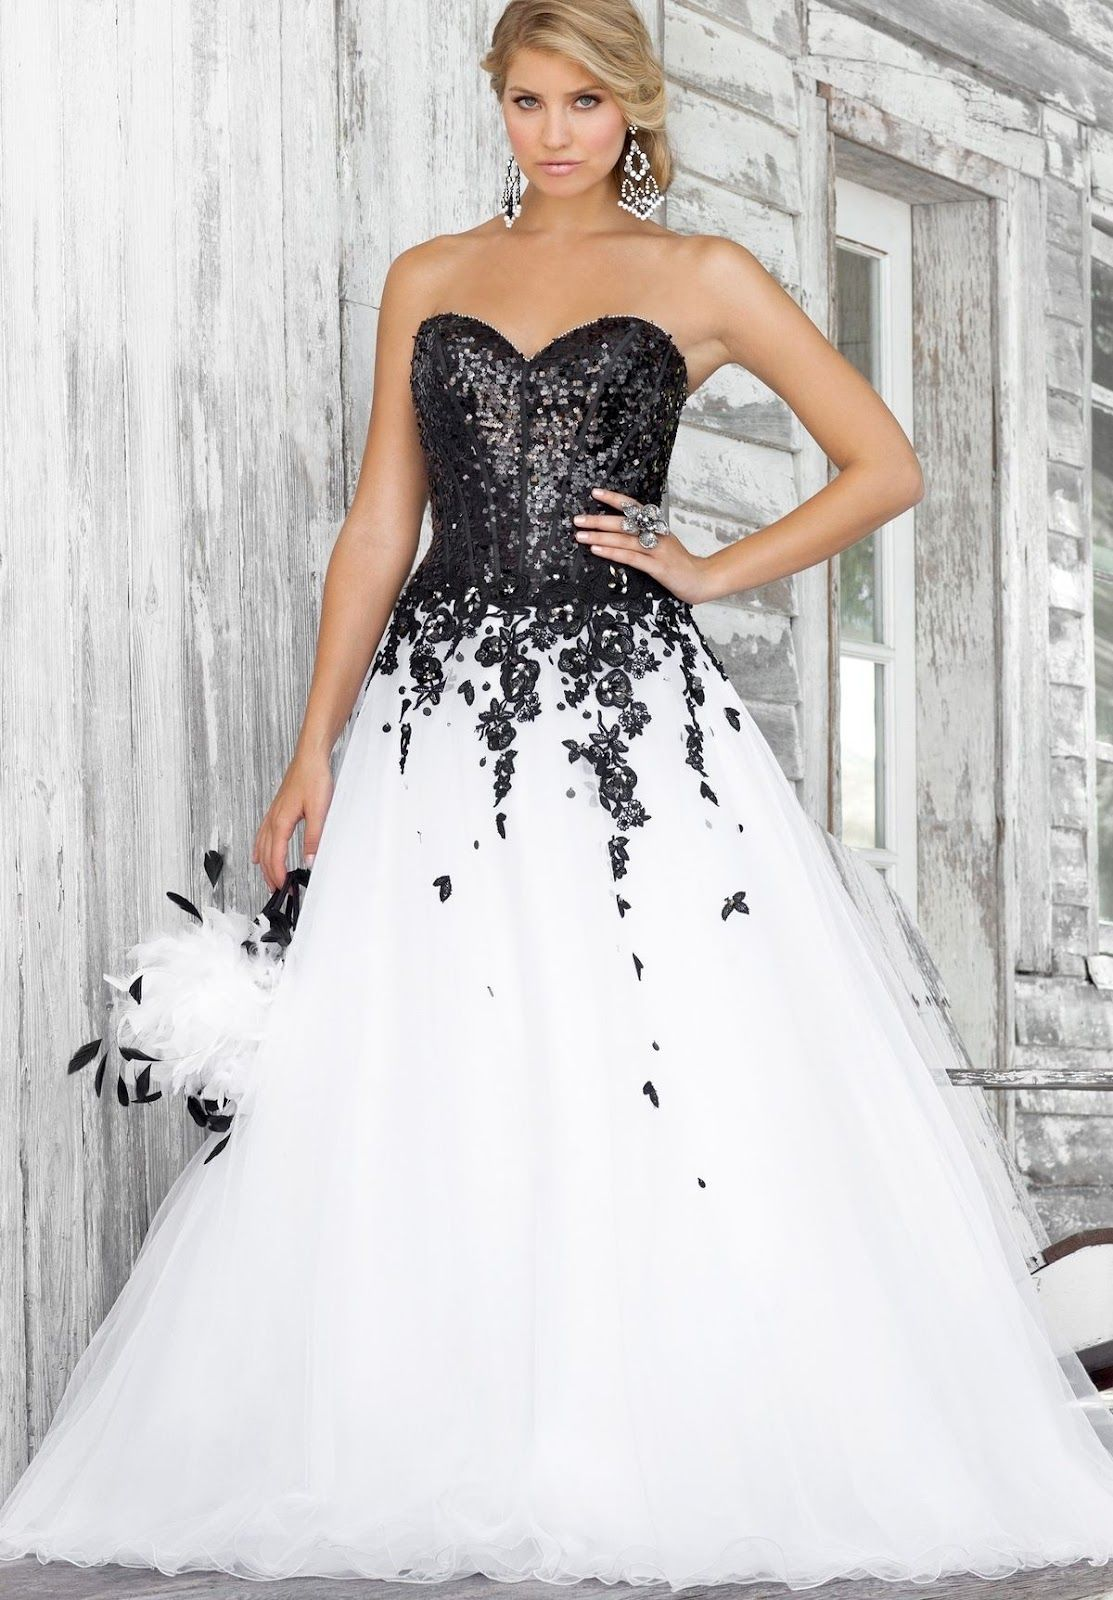 ball gowns | WhiteAzalea Ball Gowns: Delicate Ball Gowns Make You ...